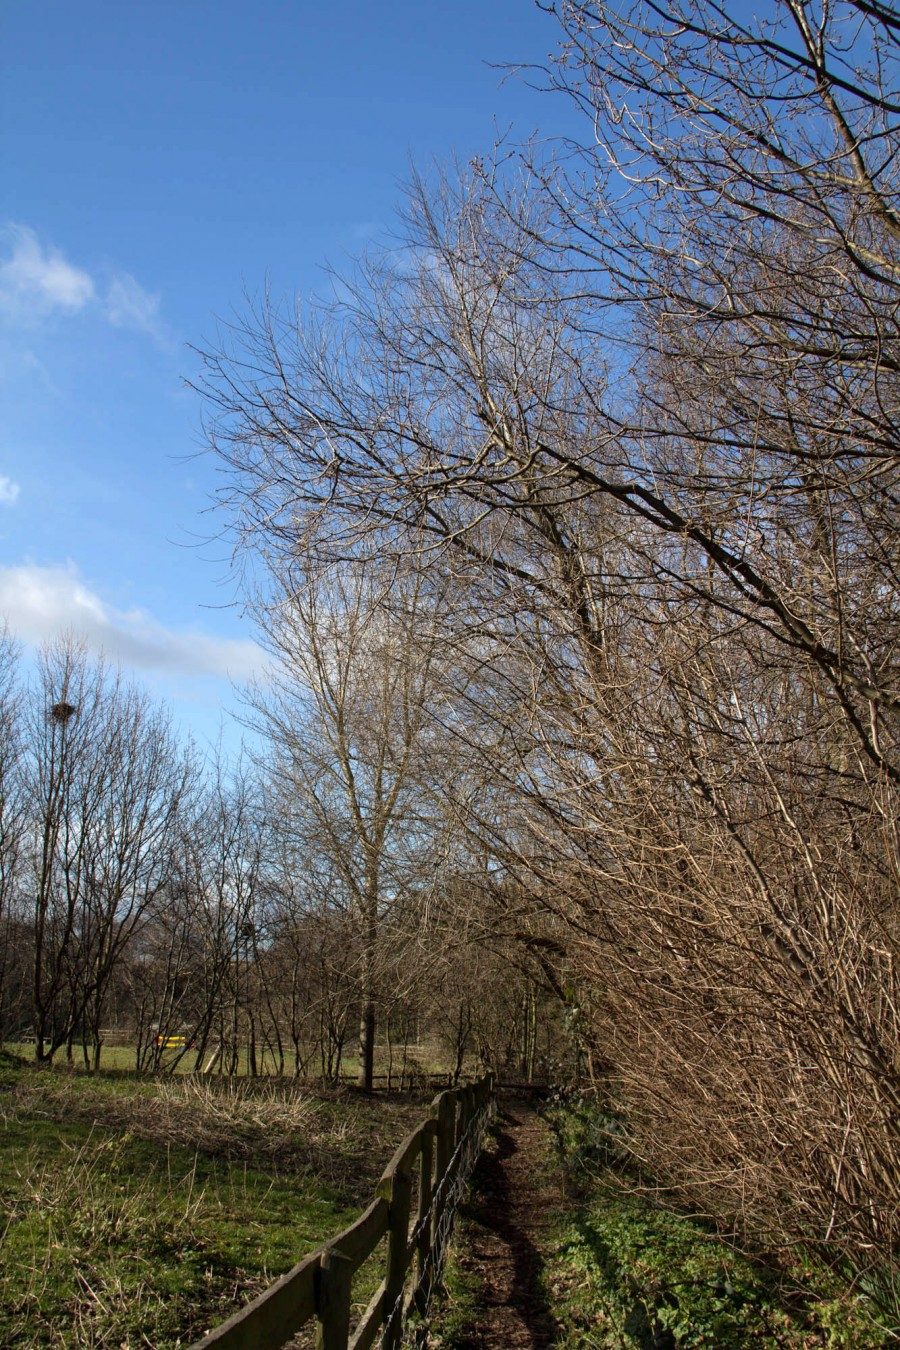 Blue skies and bare trees (but not for long).